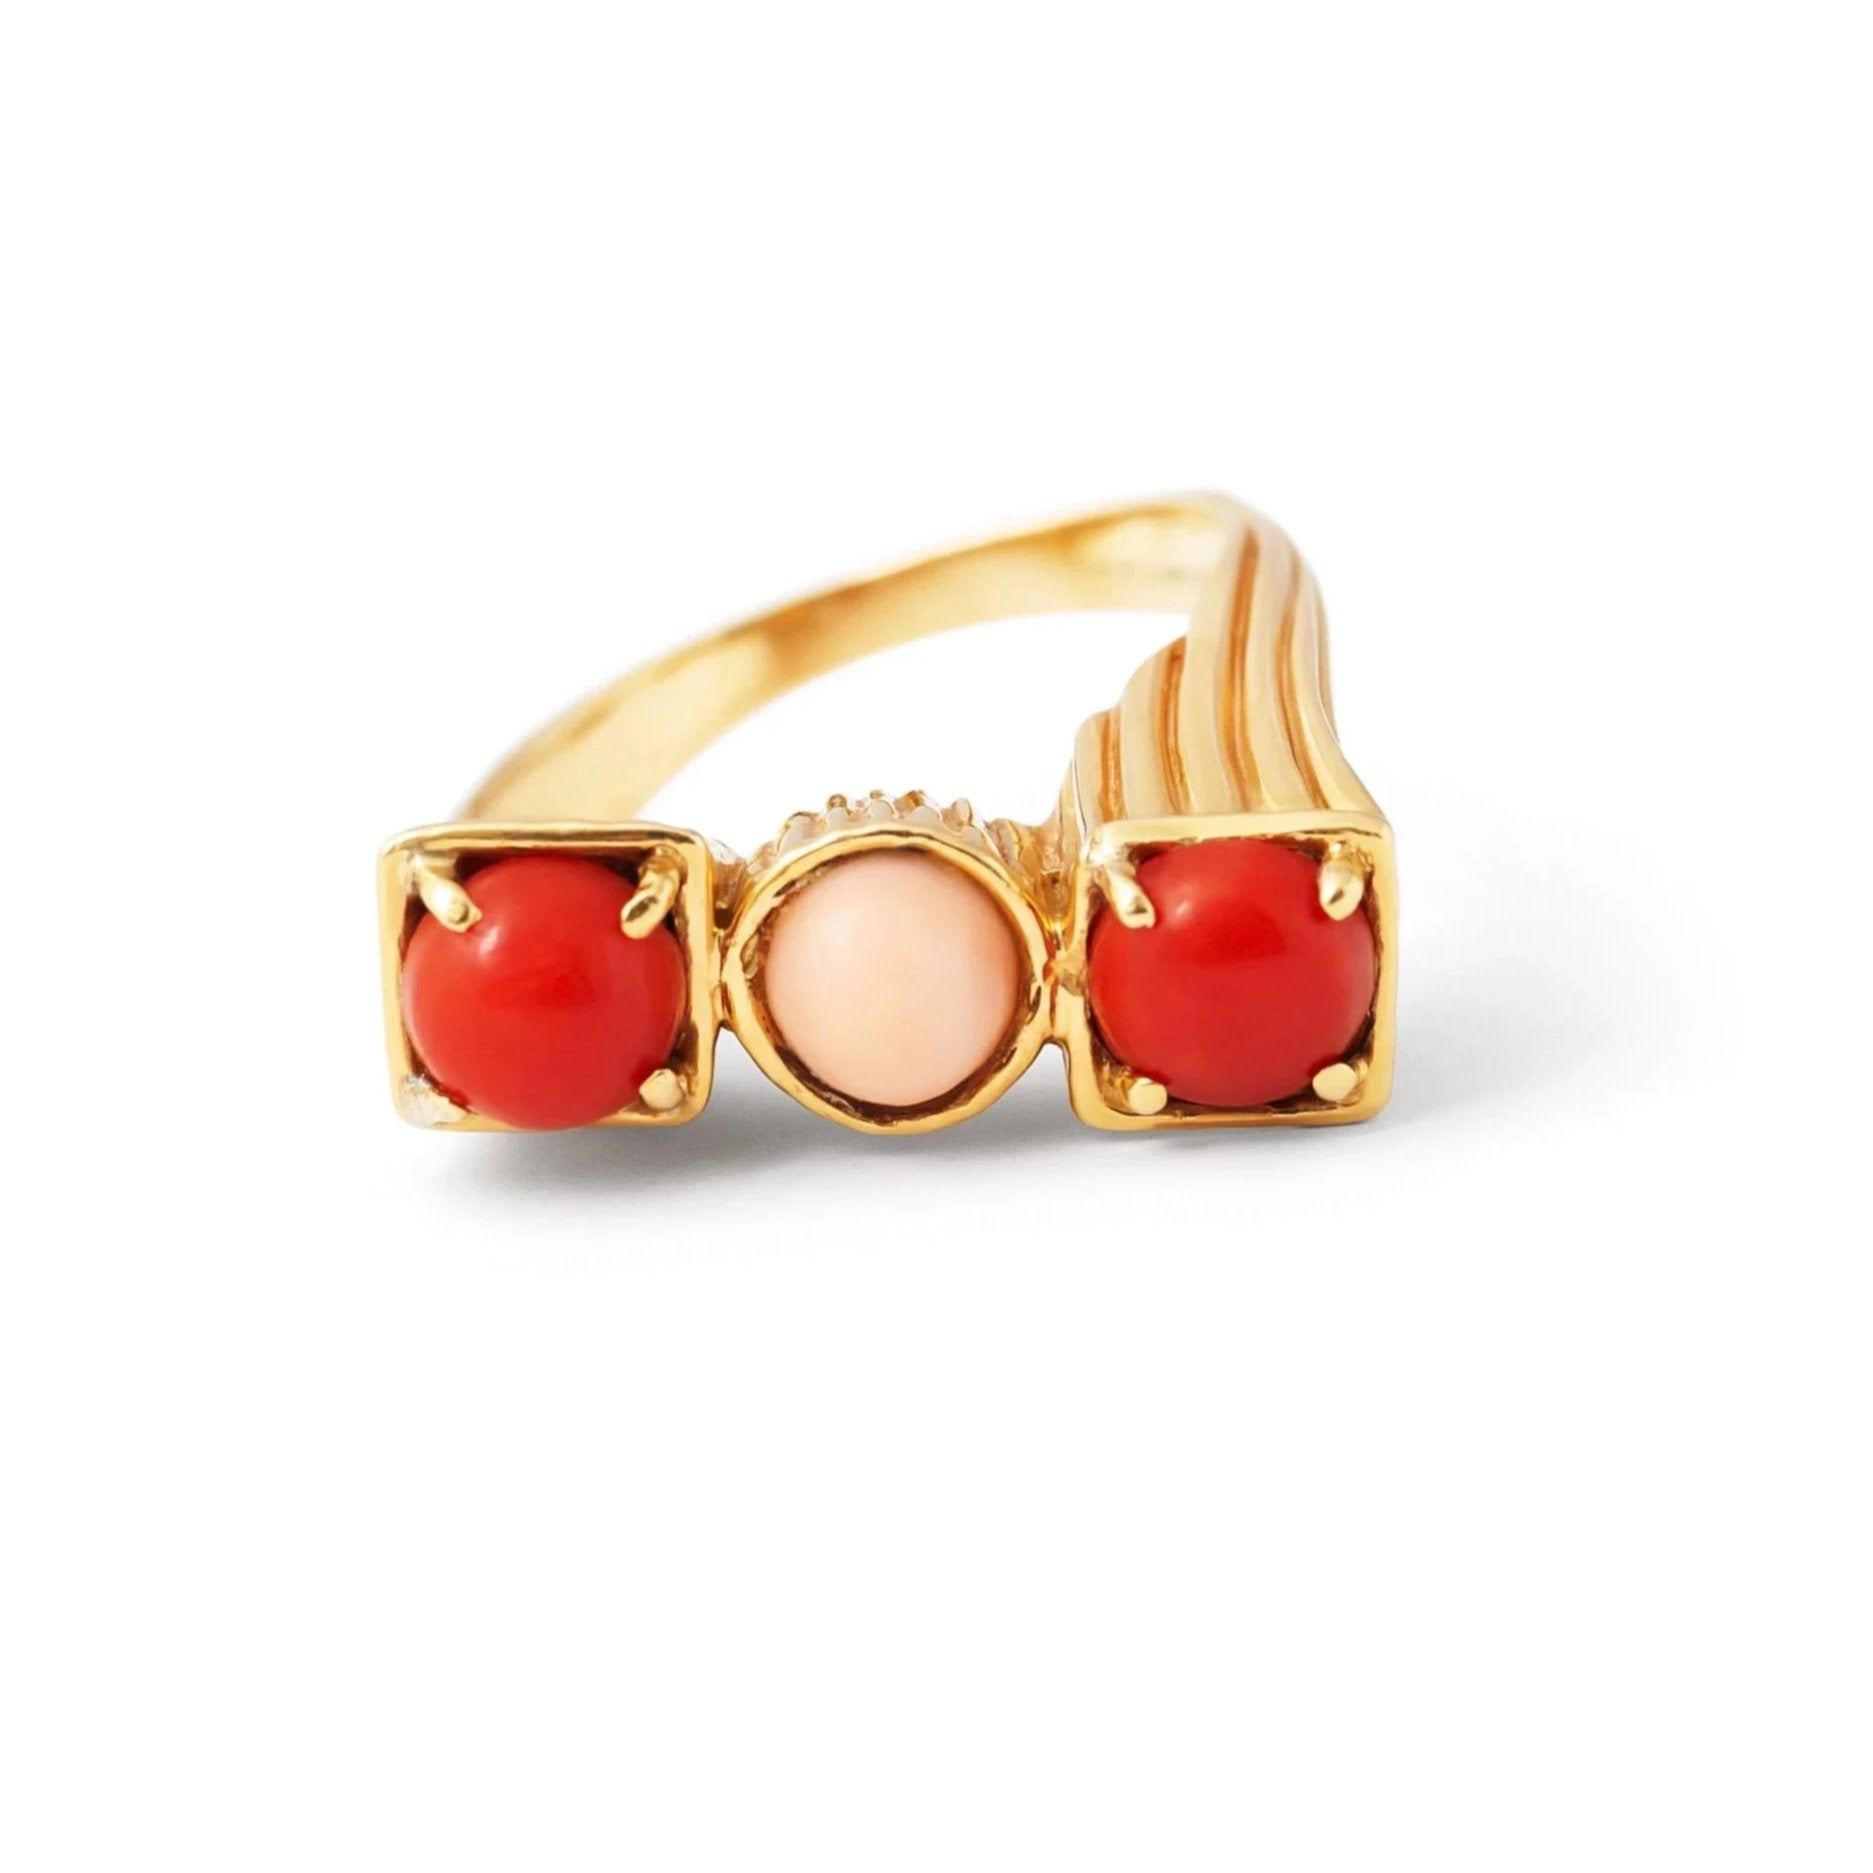 Tiffany & Co. Coral and 18k Gold Ring